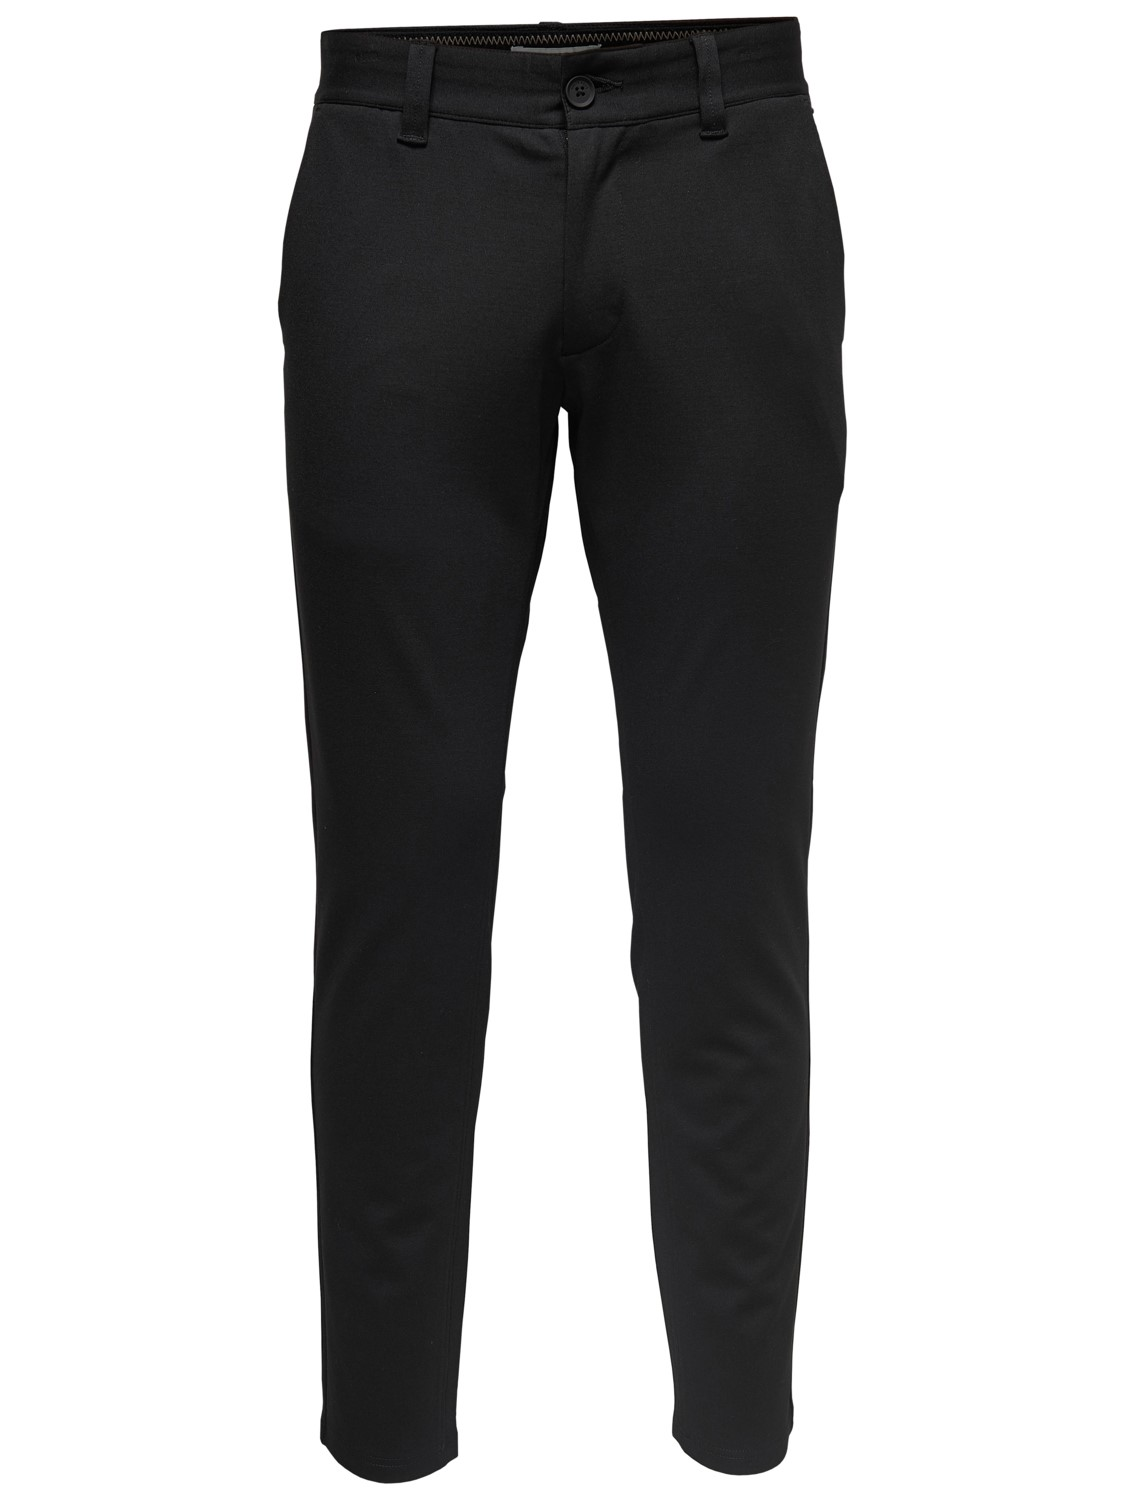 ONLY & SONS - Mark Pants Black | Gate 36 Hobro